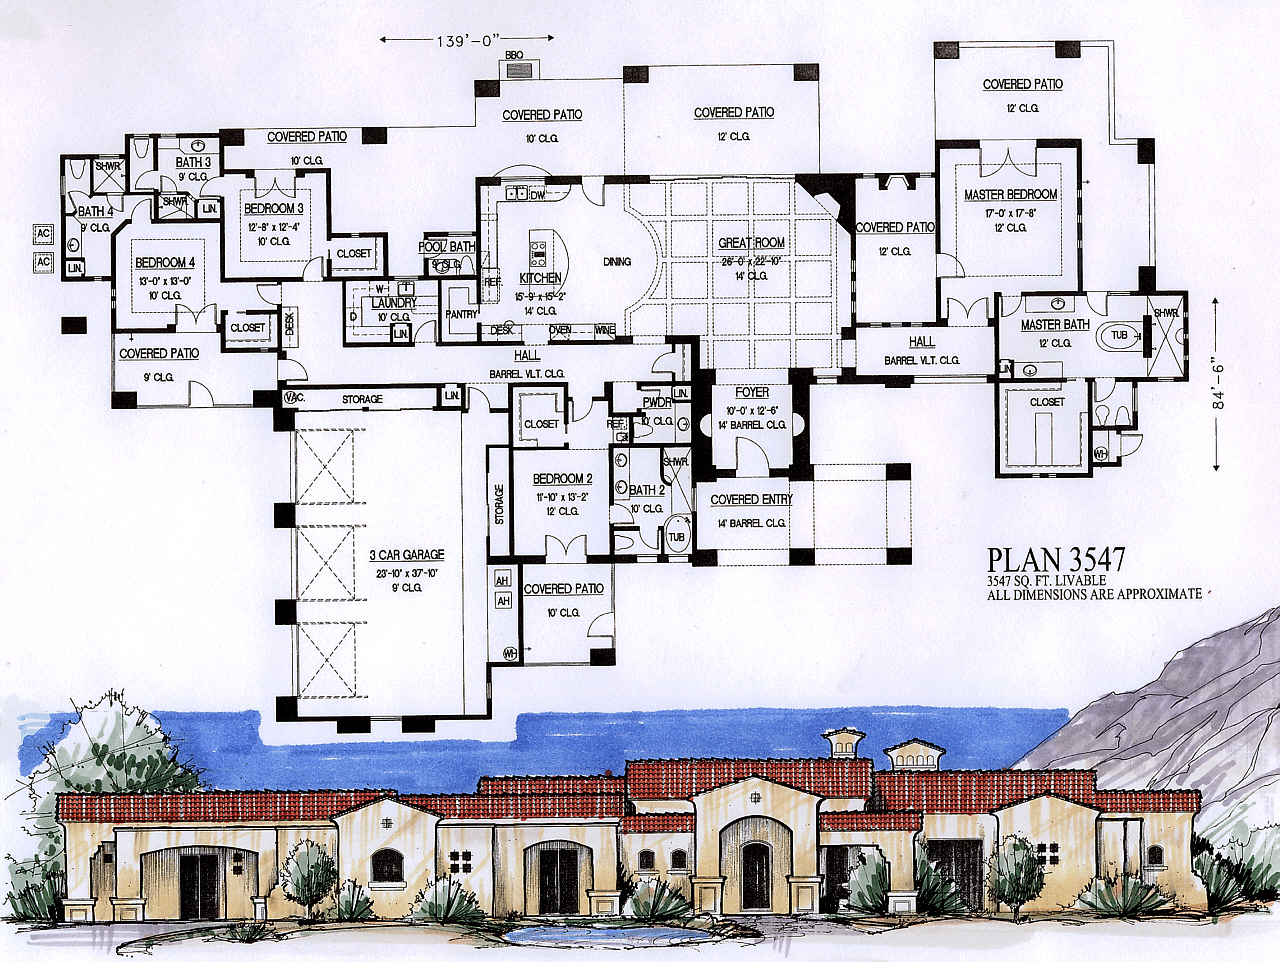 3500 to 4000 square feet 3500 sq ft house plans two stories